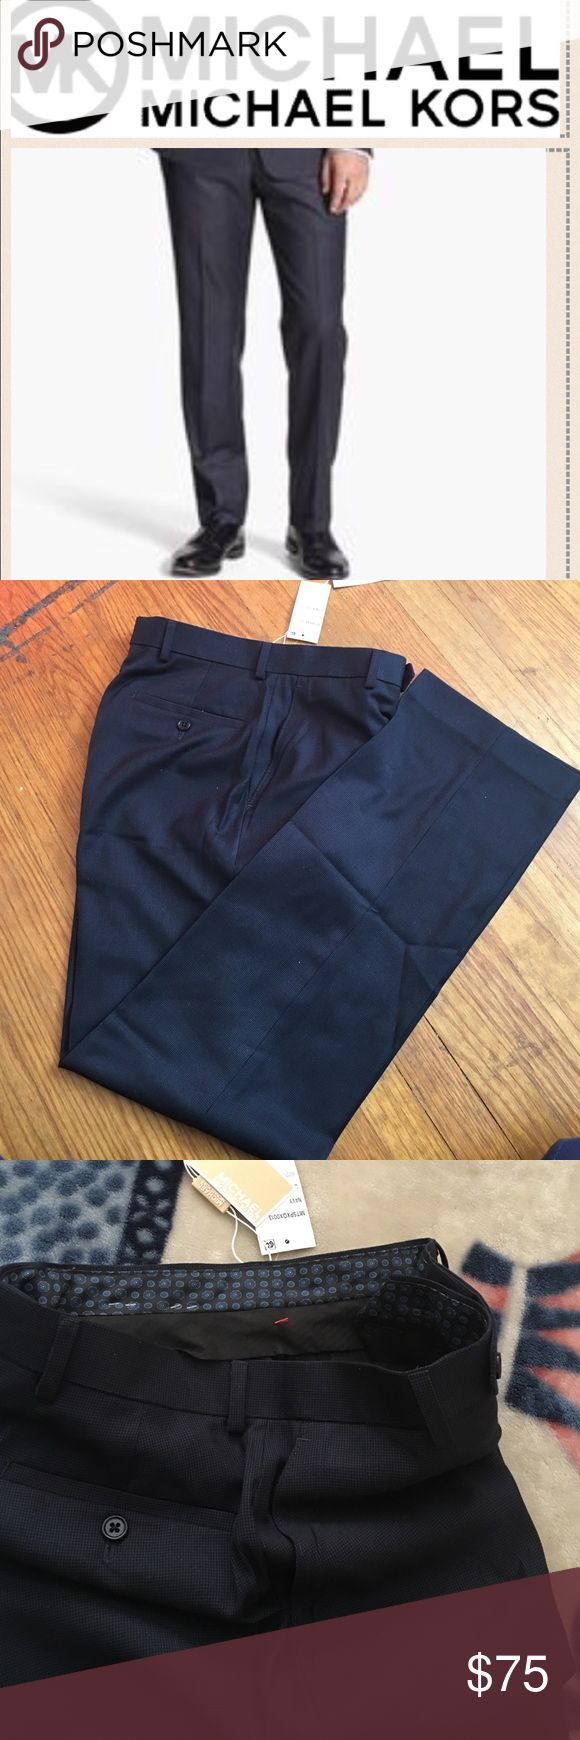 🎁Michael Kors Men's dress pants Brand NWT Michael Michael Kors Men's Navy dress pants. Size 30W x 32L. Really small checked/box design. Really comfortable. MICHAEL Michael Kors Pants Dress